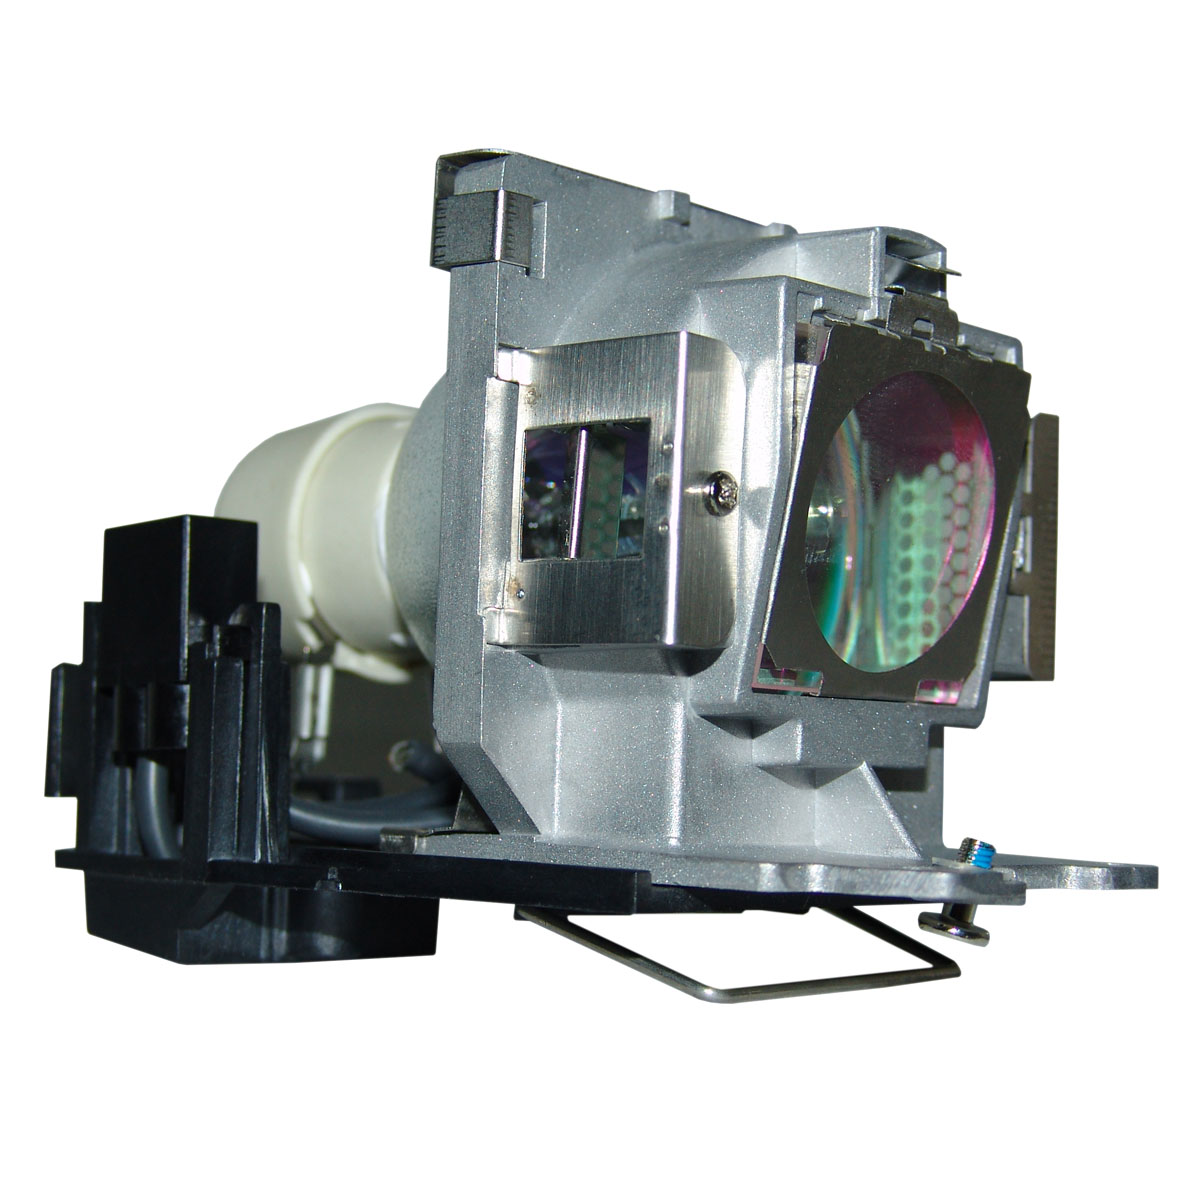 Original Philips Projector Lamp Replacement with Housing for BenQ MP24 - image 1 of 5